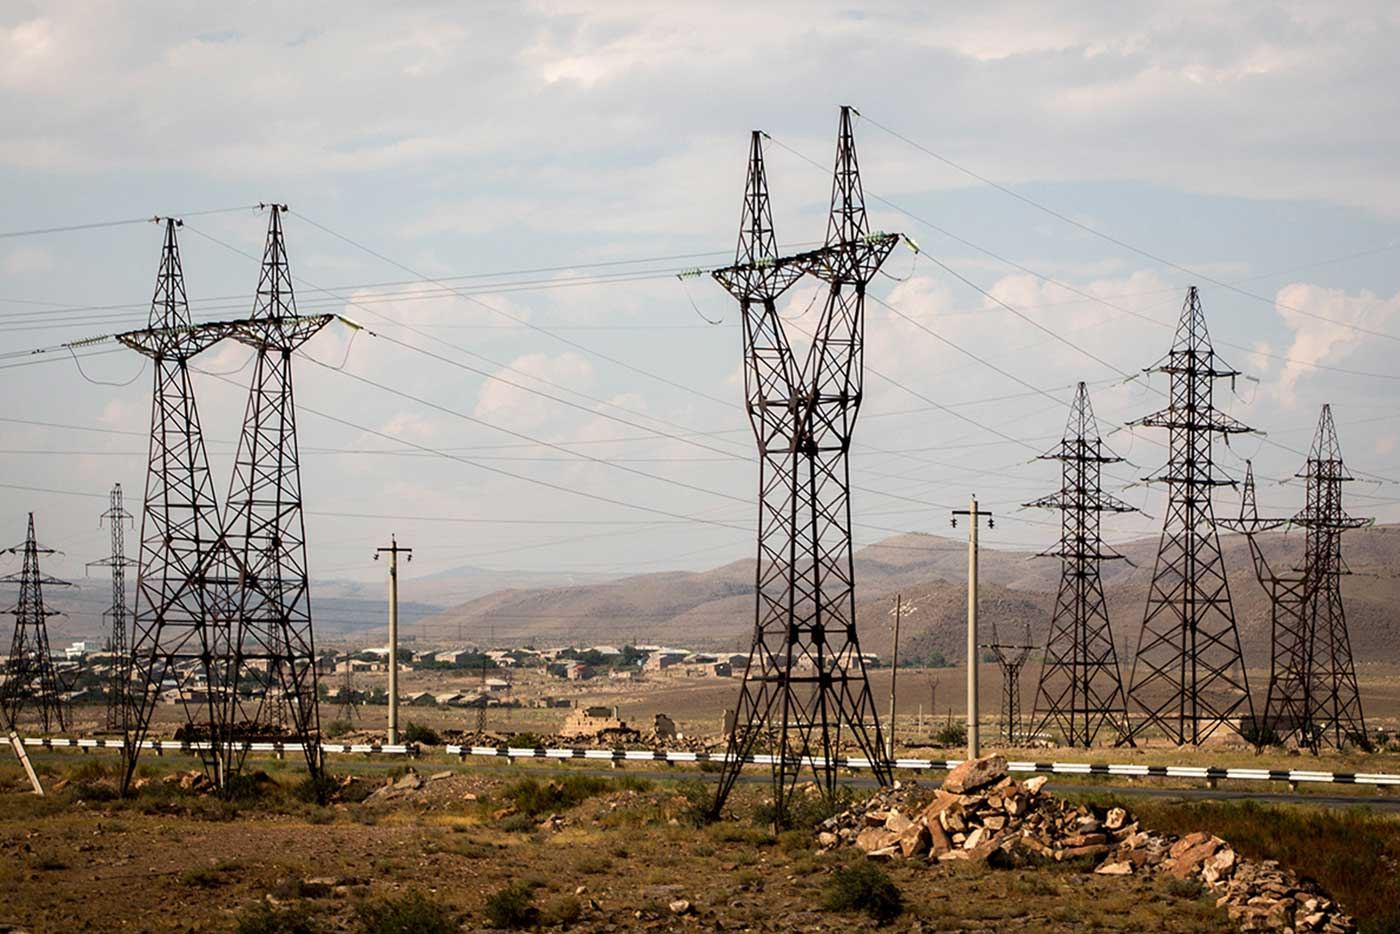 A humming troop of pylons in the lowlands.